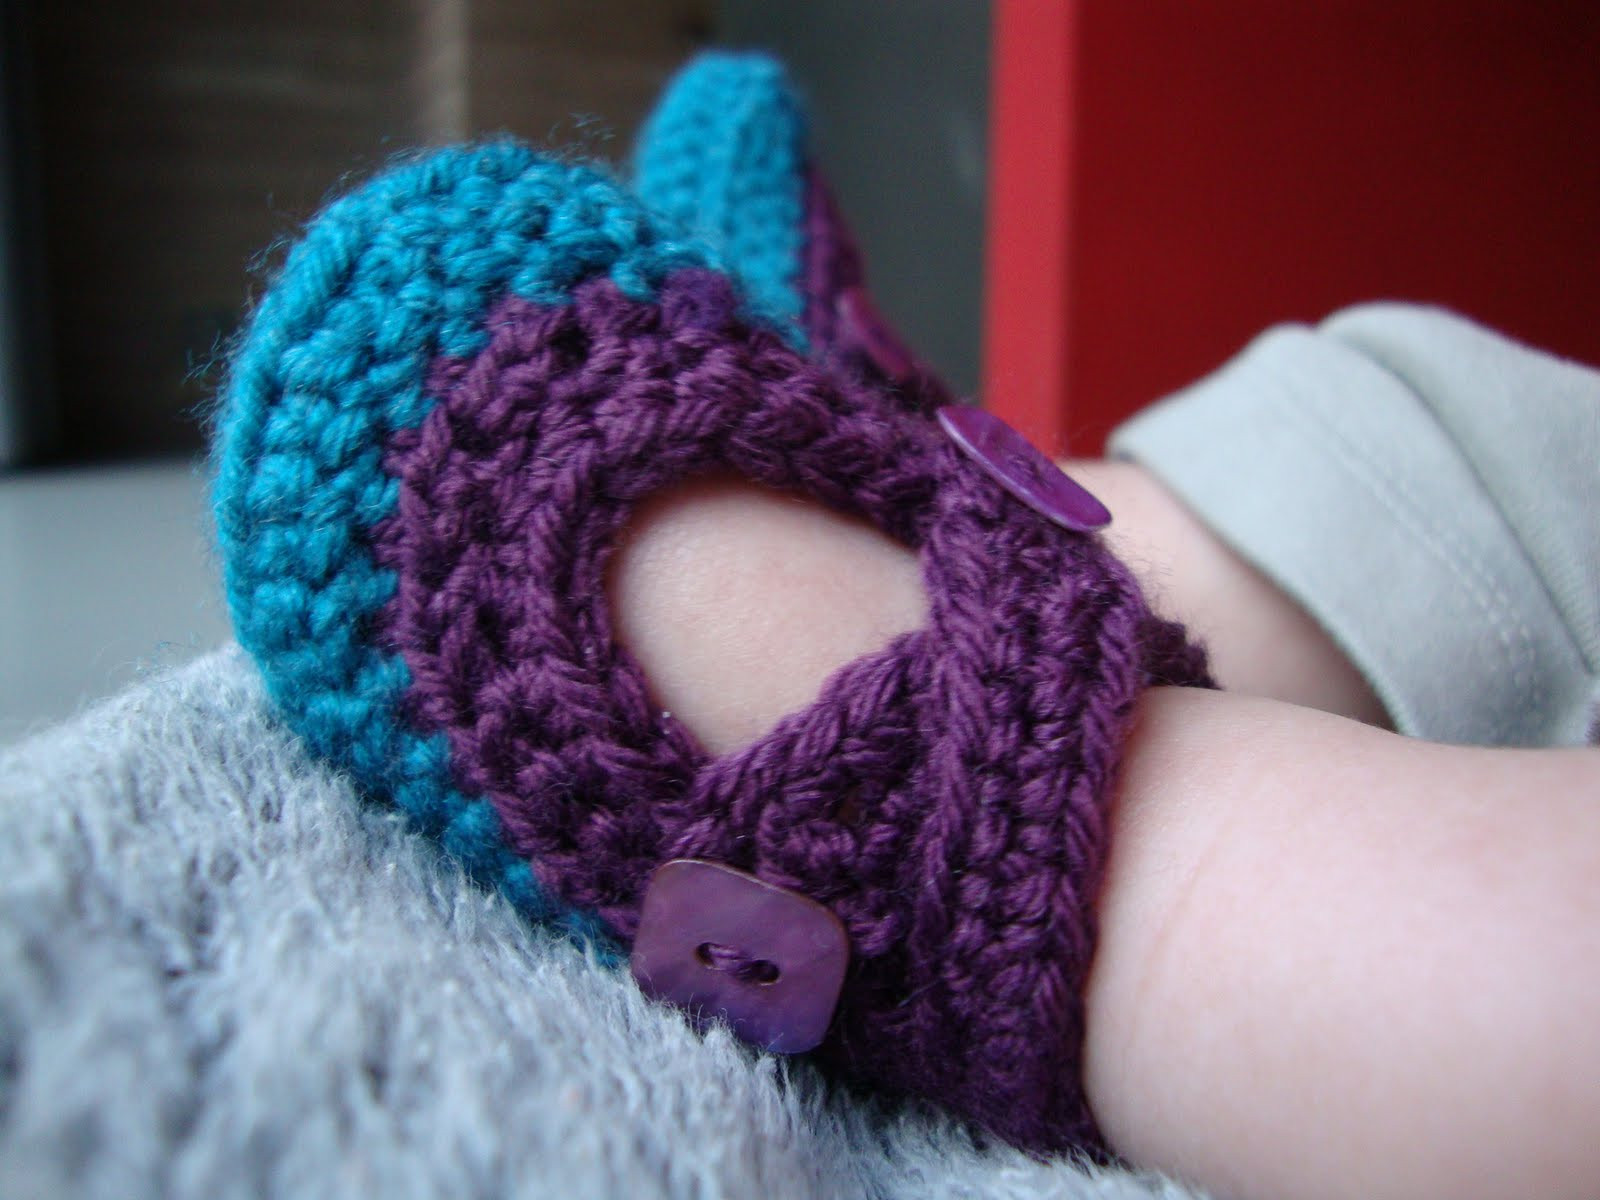 Crochet Baby Sneakers Best Of Crochet Baby Shoes Pattern Free Patterns Of Superb 49 Images Crochet Baby Sneakers